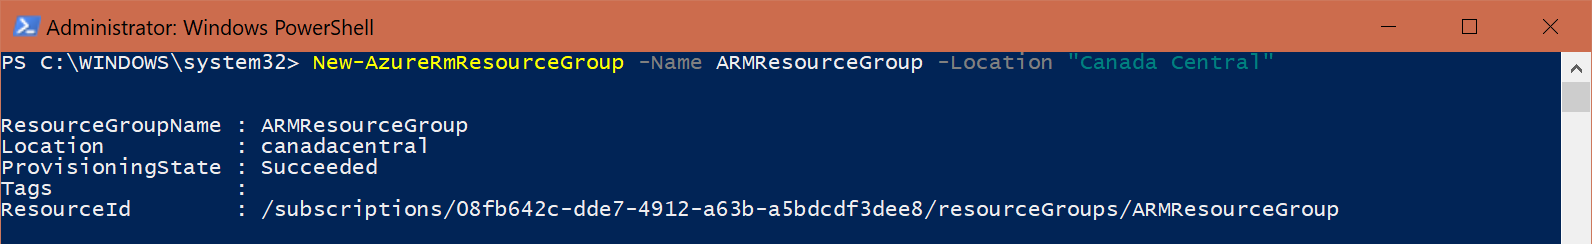 ARM Template - PowerShell - New Resource Group